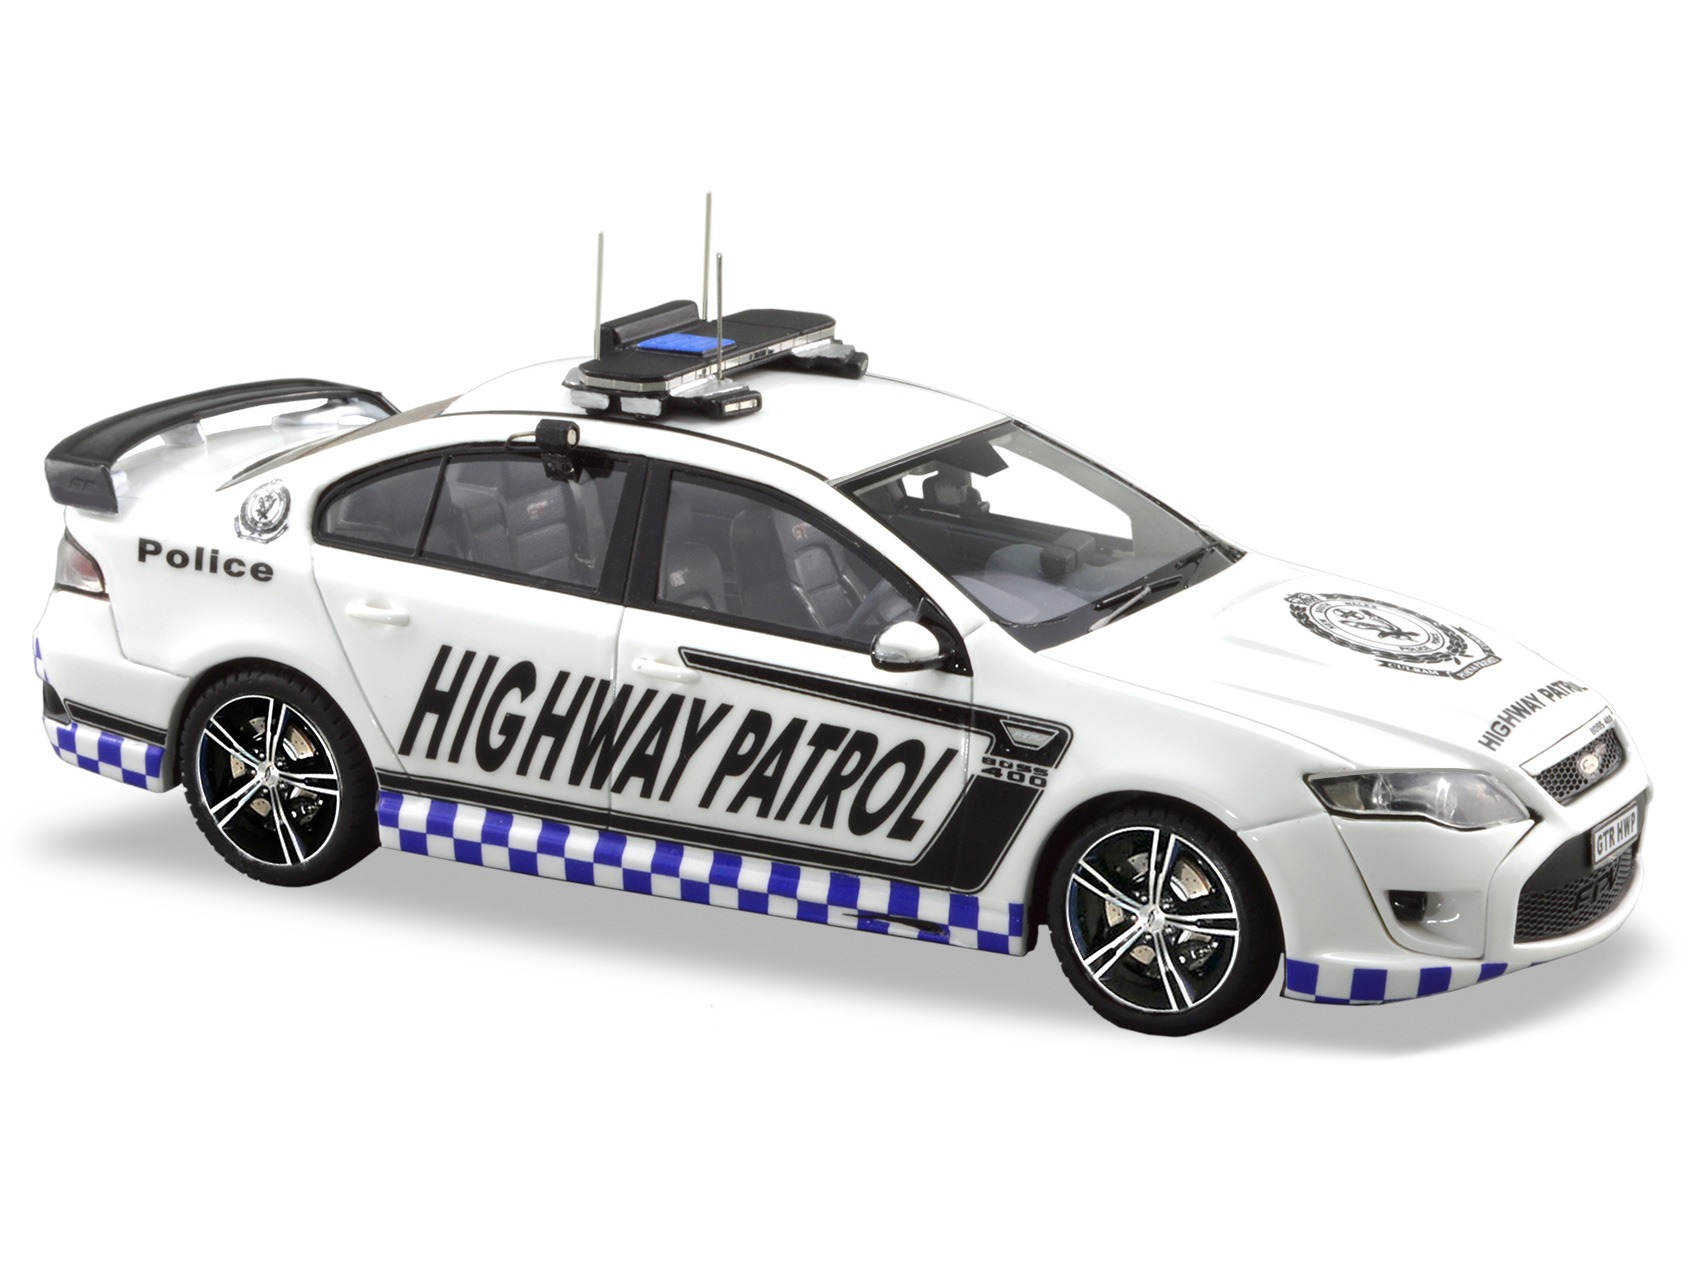 2012 FPV GT RSPEC NSW Highway Patrol – White